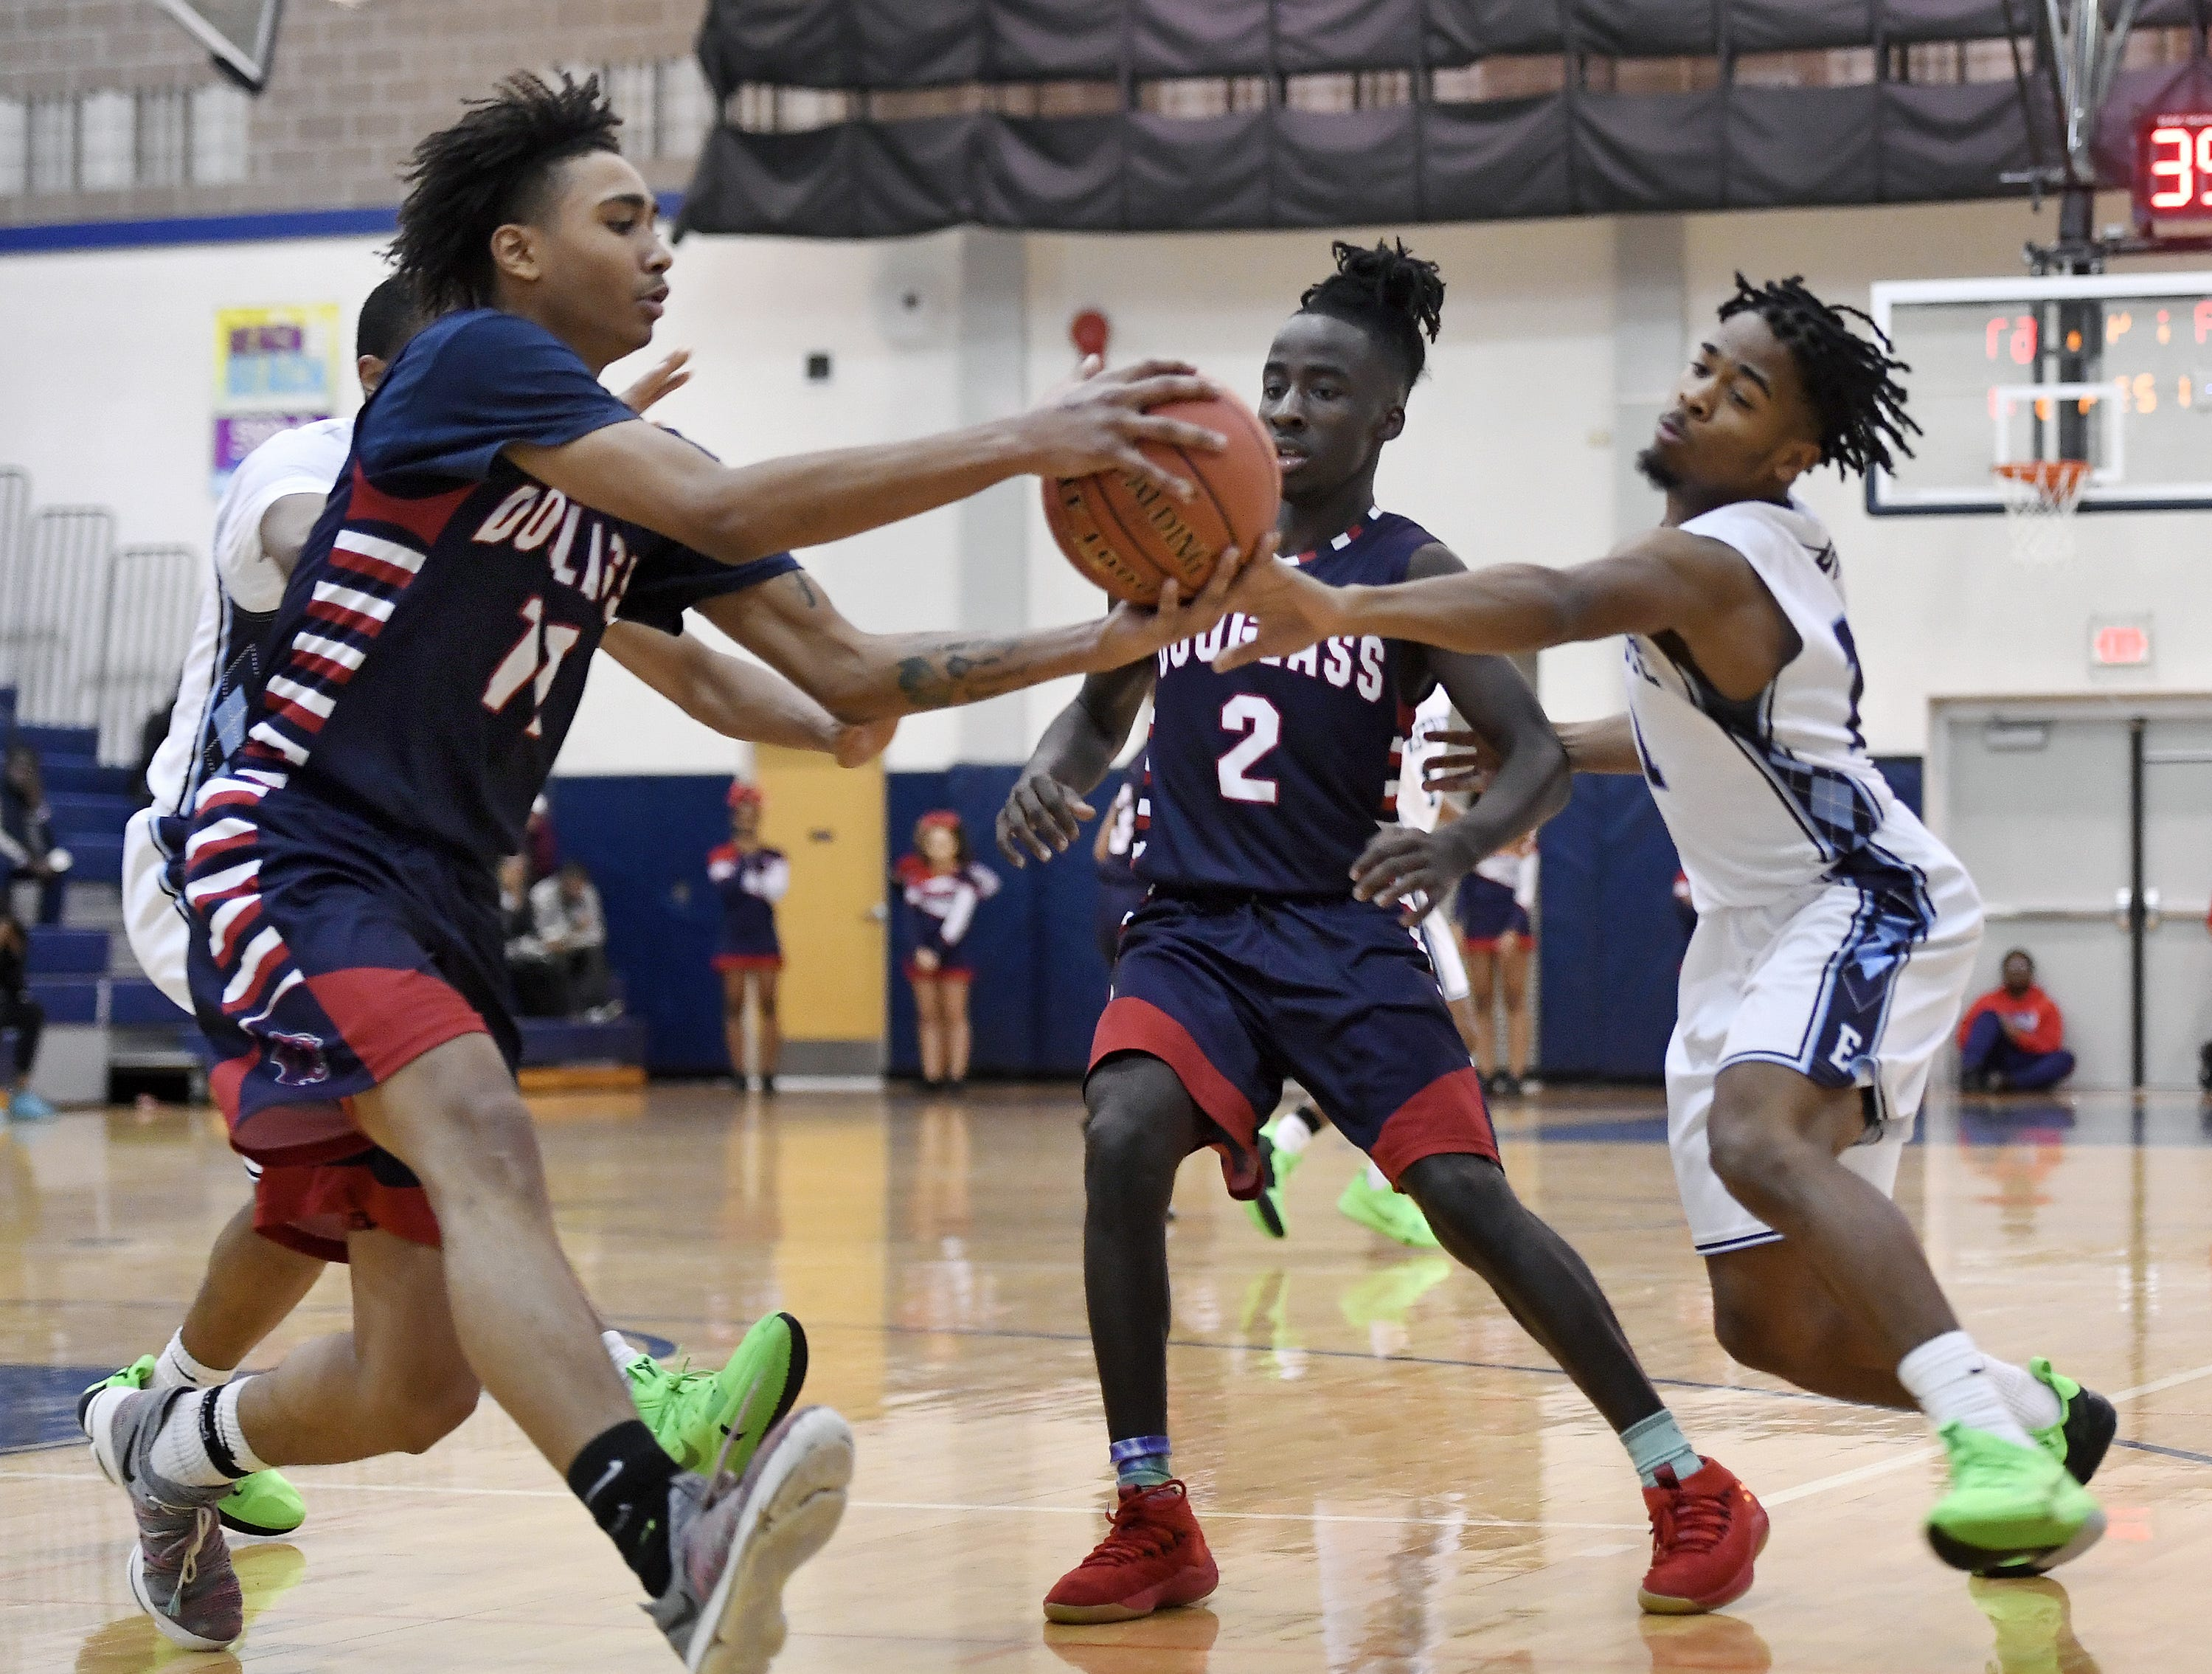 Eastridge's Adrian Rodgers, right, tries to steal an inbounded ball for NE Douglass' Adonis Flagler during the finals of the Al Masino Memorial Tip-Off Tournament.